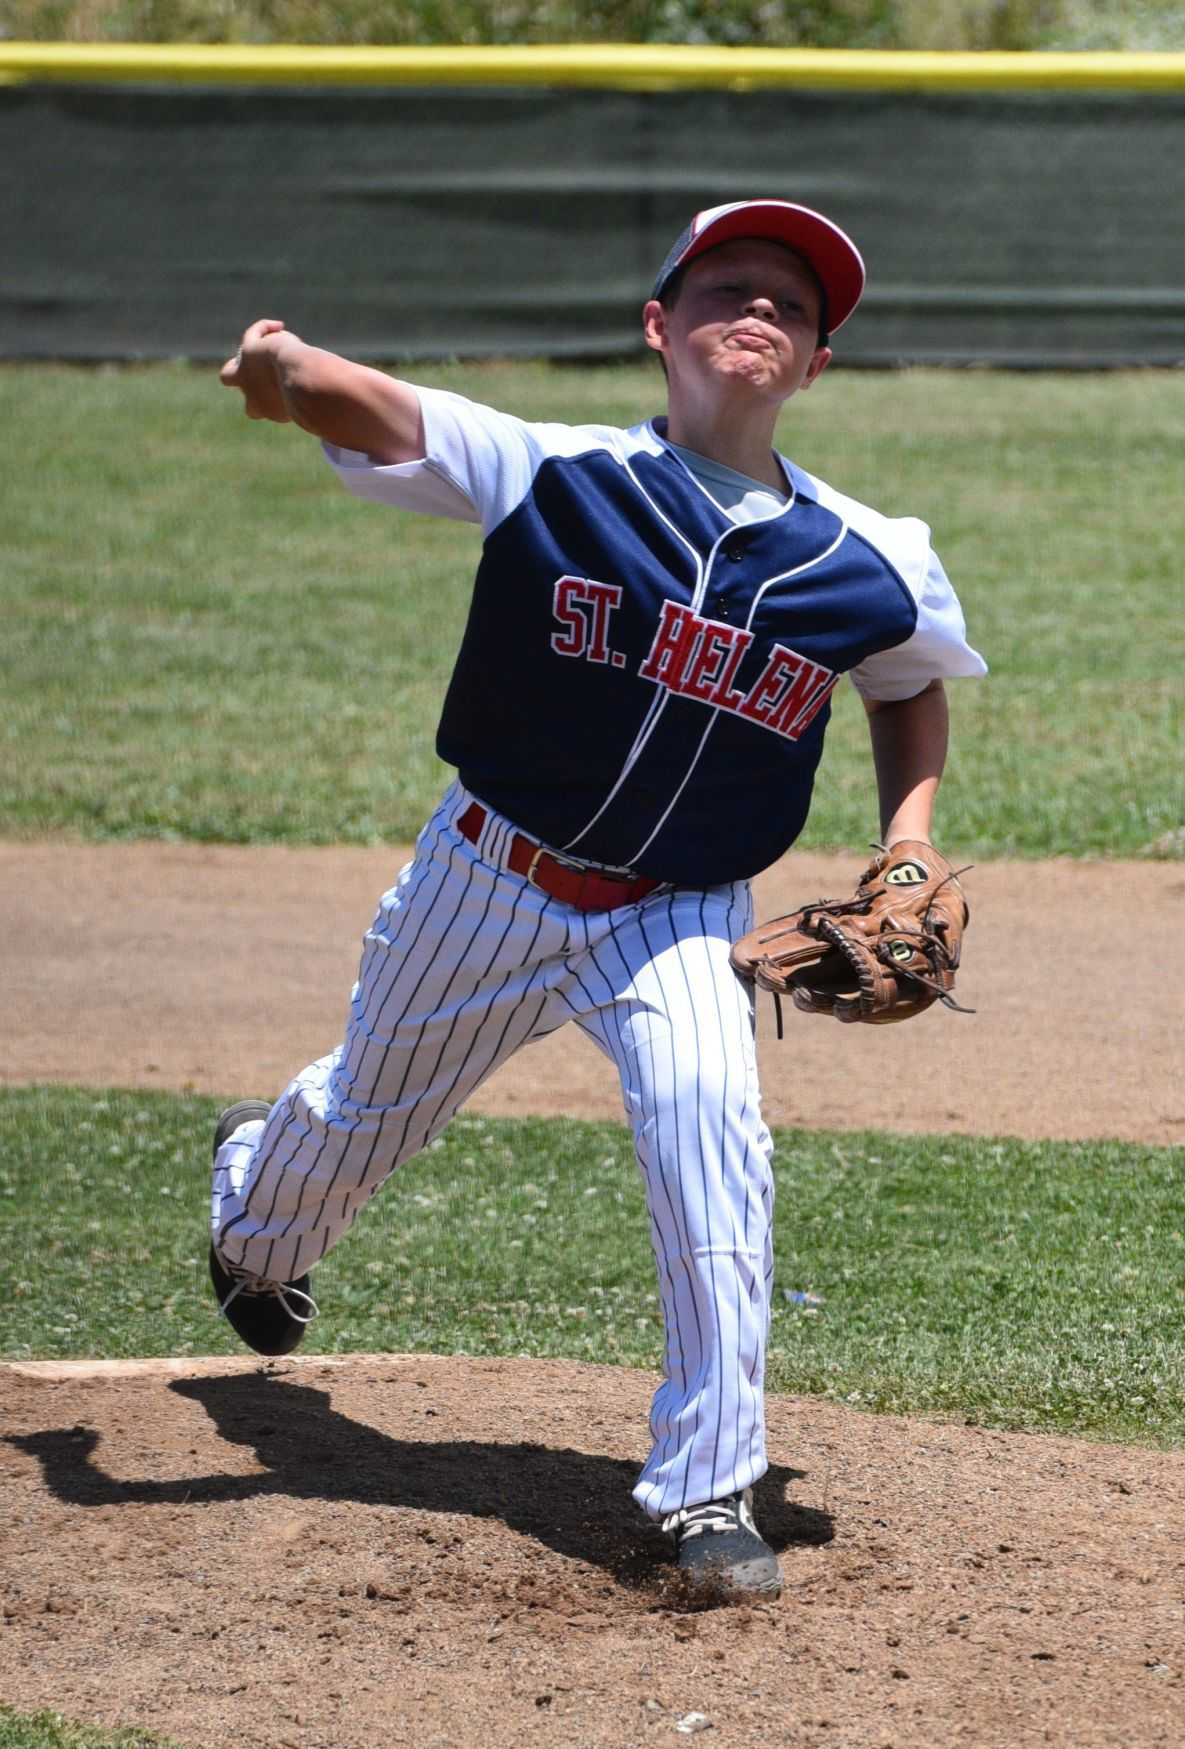 Little League District 53 10-11-12 All-Star Baseball: Napa National